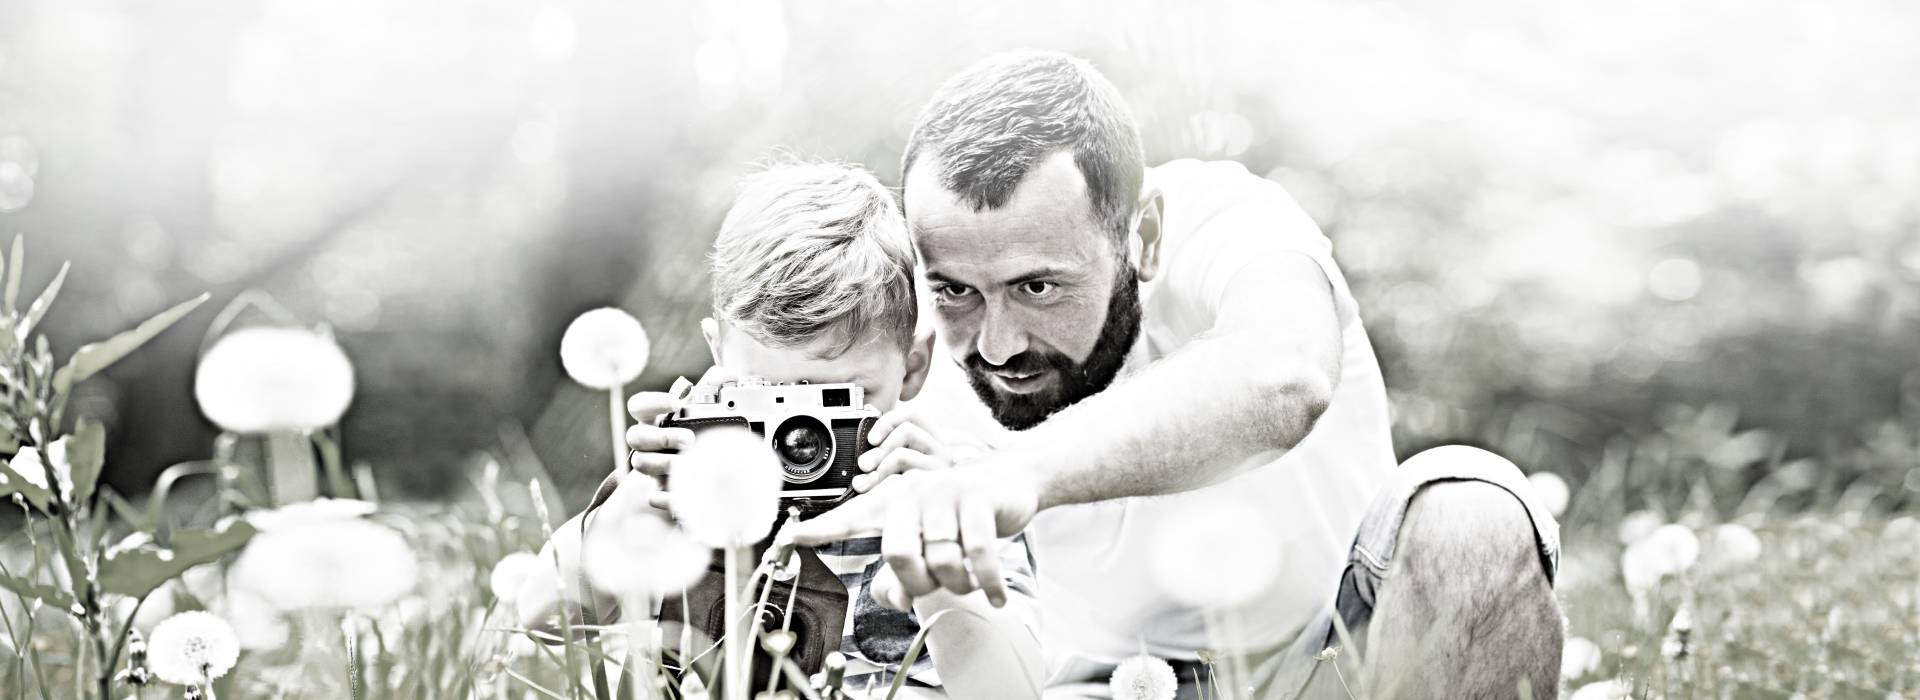 A father teaches his son how to use a camera.